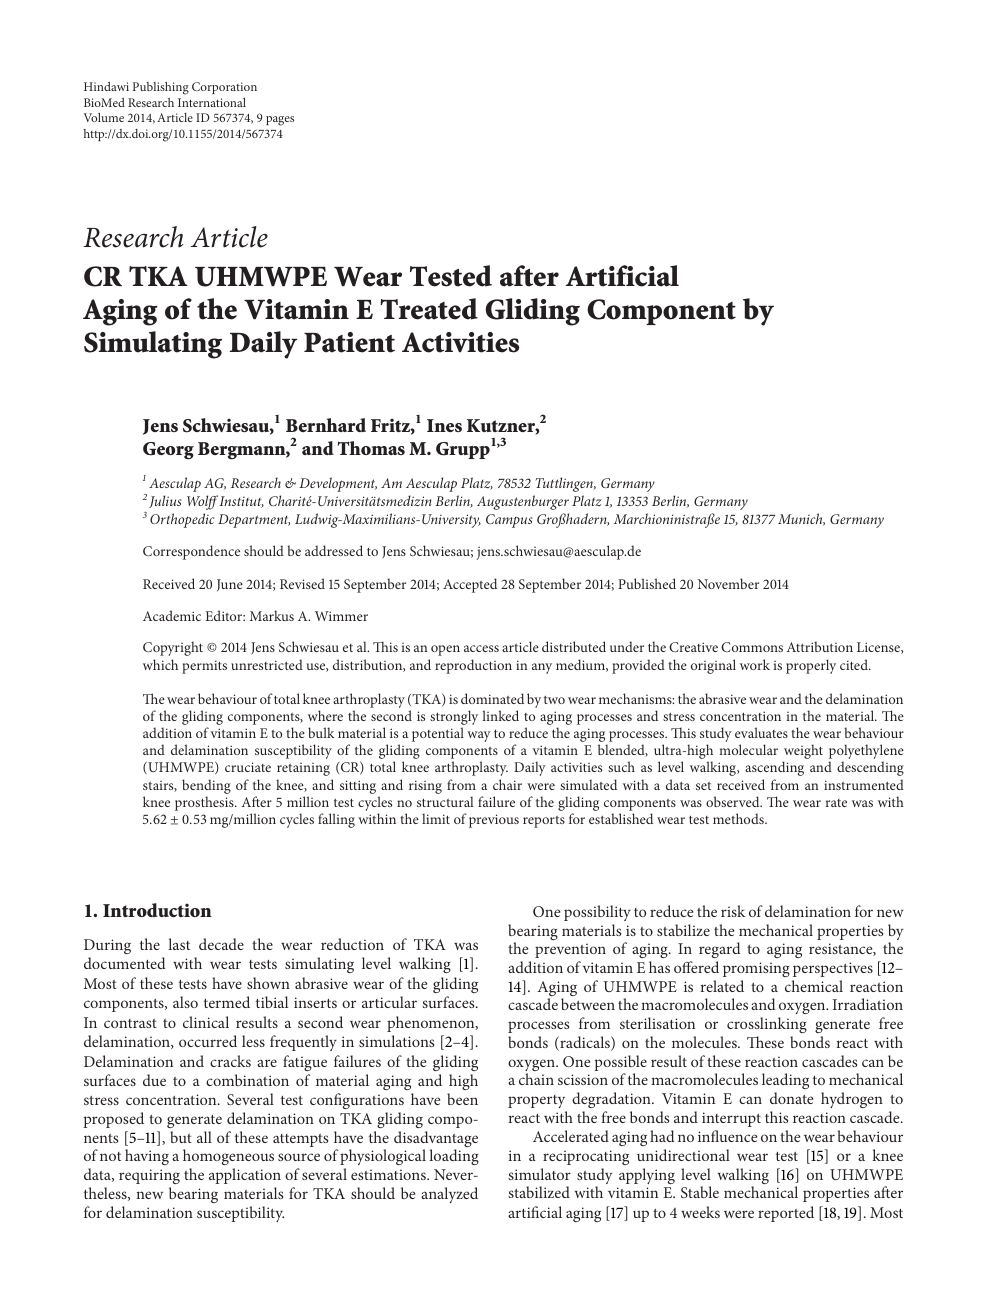 CR TKA UHMWPE Wear Tested after Artificial Aging of the Vitamin E